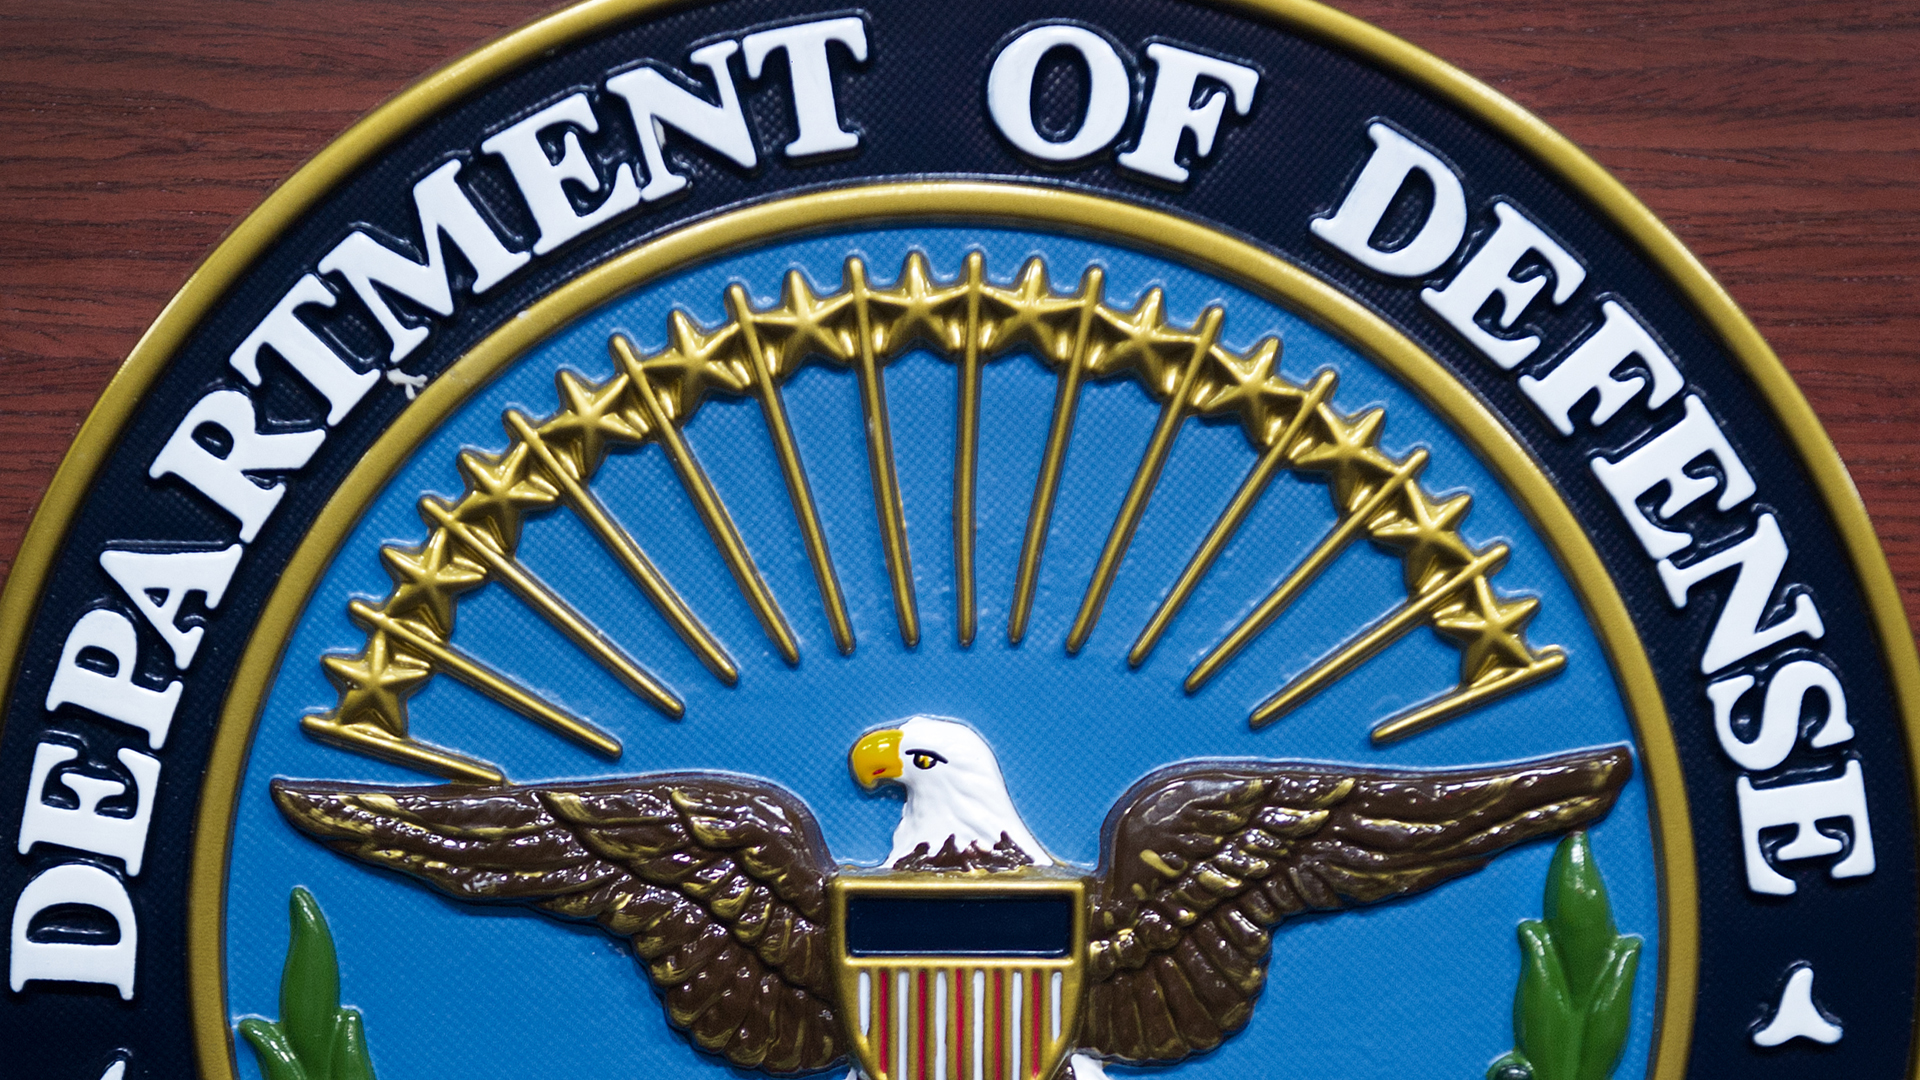 The U.S. Department of Defense seal is seen on the lectern in the media briefing room at the Pentagon Dec. 12, 2013, in Washington, D.C. (Credit: Paul J. Richards/AFP/Getty Images)